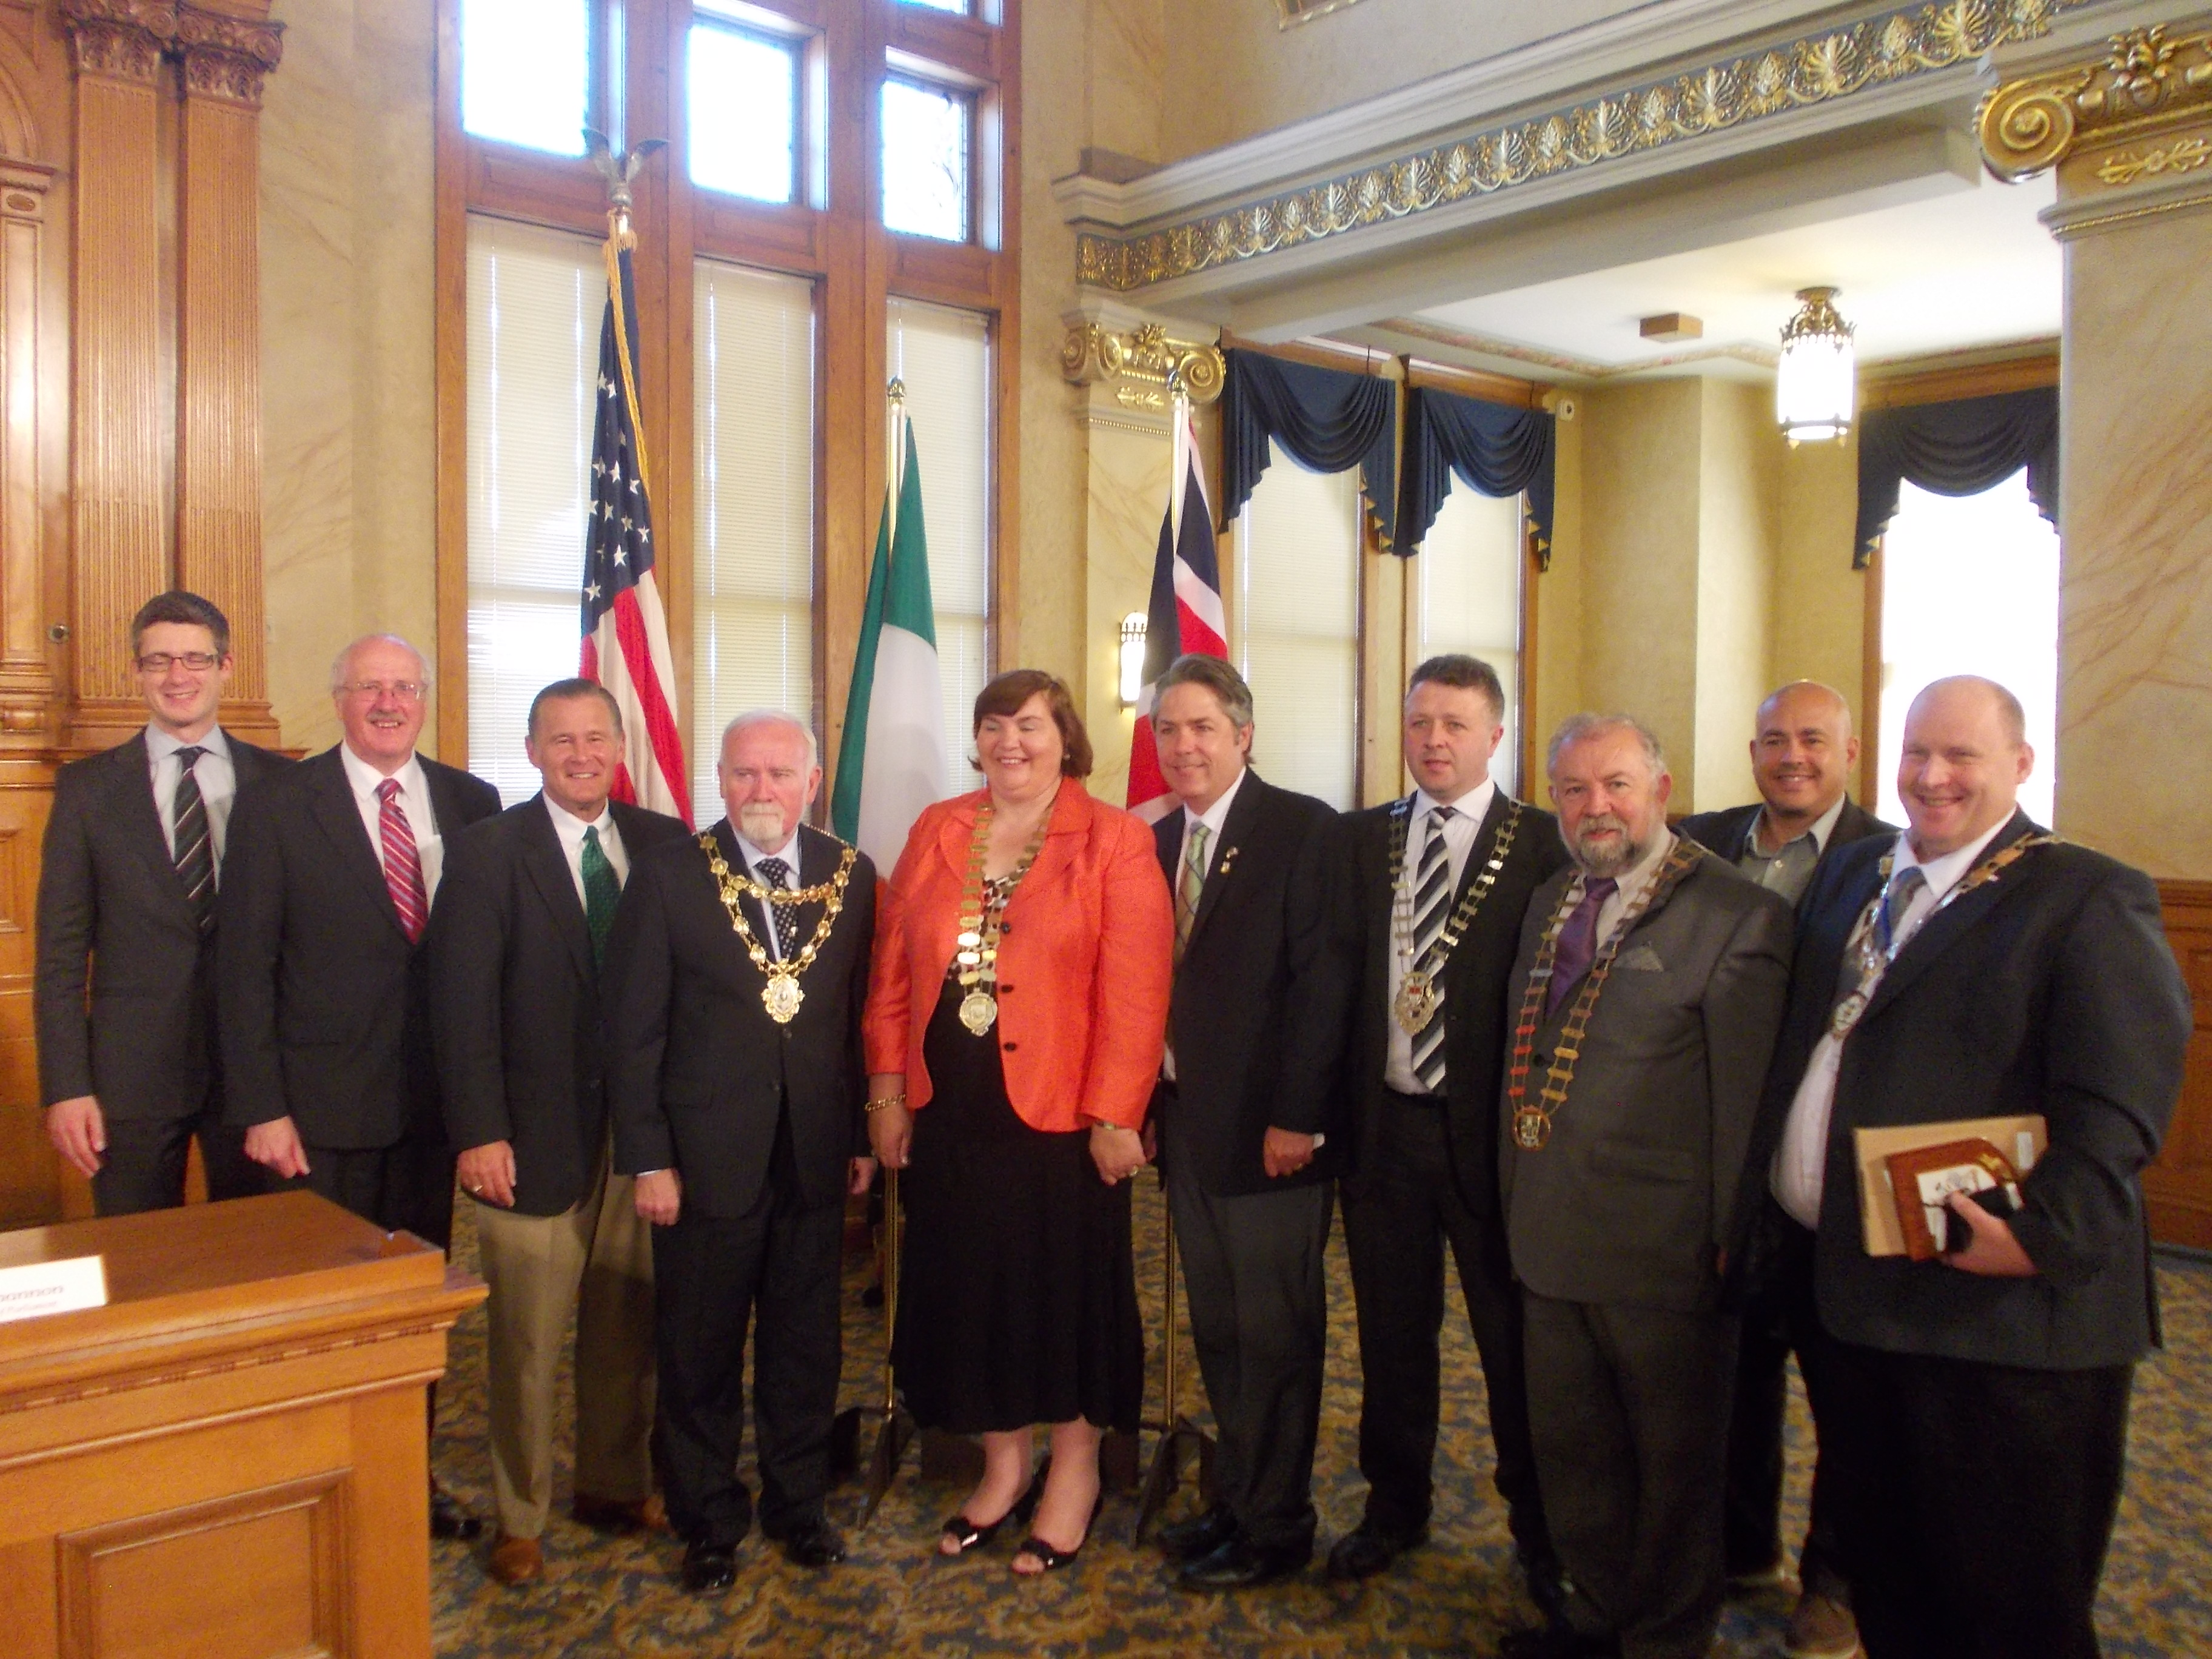 At a civic reception in Milwaukee City Hall to mark the opening of Irish Fest 2014 were (l to r) Nicholas Michael, Deputy Consul General of Chicago; Jim Shannon Member of Parliament, Westminster; Alderman Bob Donovan, Milwaukee Council, Cllr. Donal Lyons, Mayor of Galway City, Cllr. Mary Hoade, Cathaoirleach, Galway County Council; Alderman Michael Murphy, Milwaukee City Council; Cllr Damien Ryan, Mayo County Council; Cllr. John Crowe, Cathaoirleach, Clare County Council; Alderman Jose Perez, Milwaukee Council and Cllr Gregg McKeen, Deputy Mayor Larne Borough Council